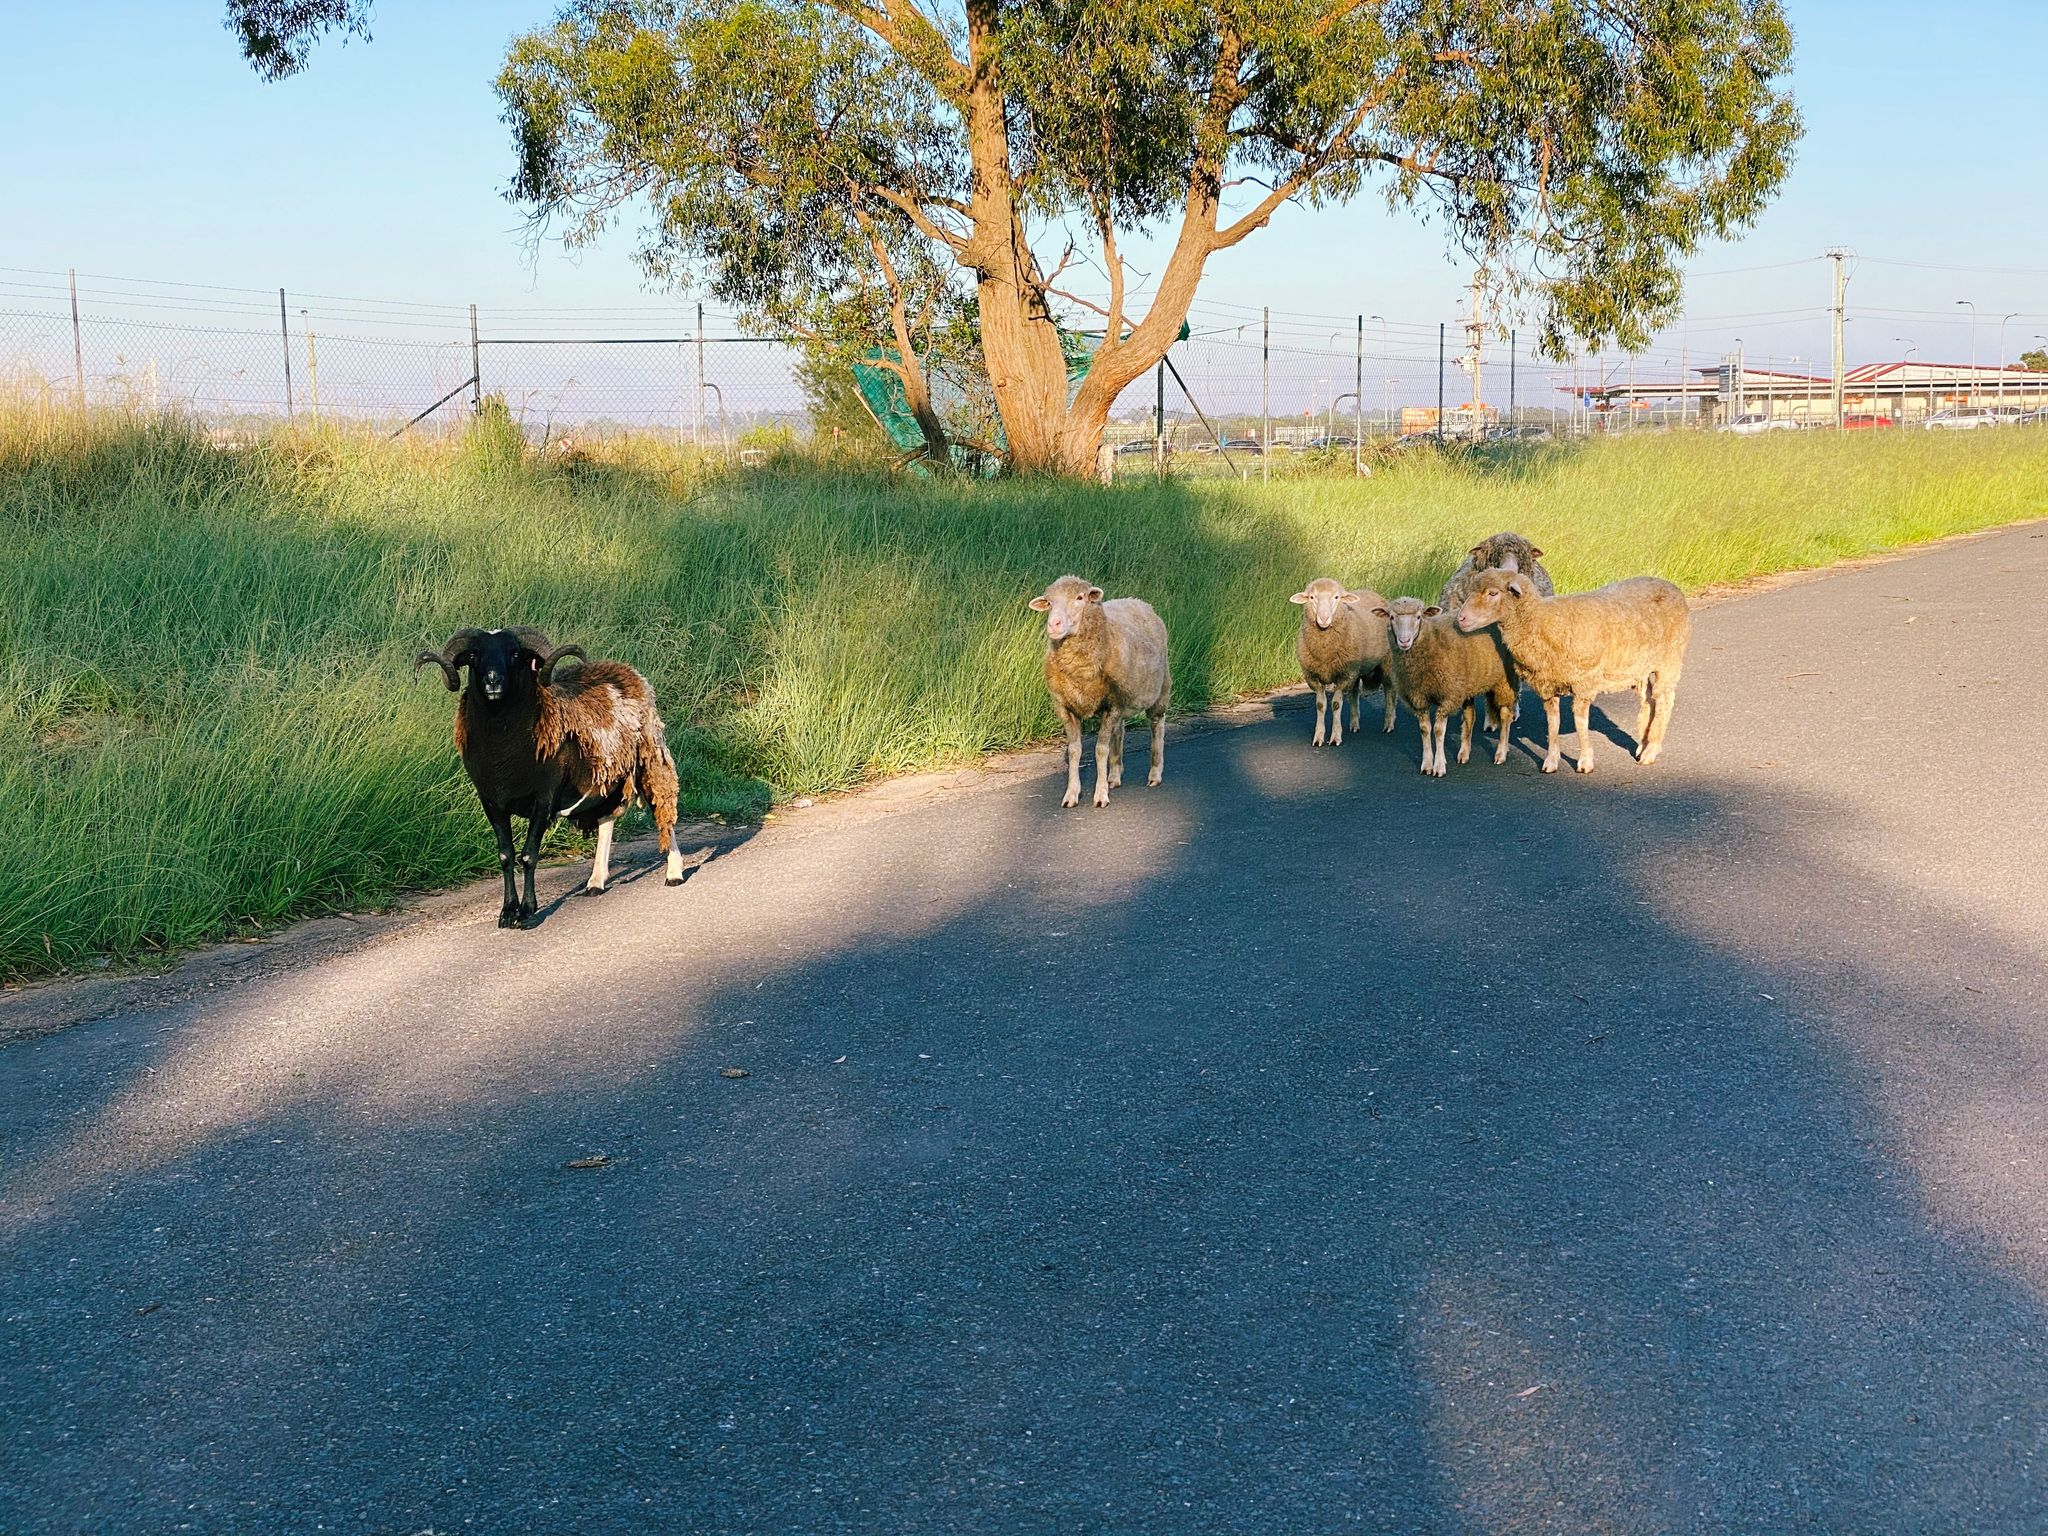 A photo of several sheep standing on a deserted road watching me carefully.